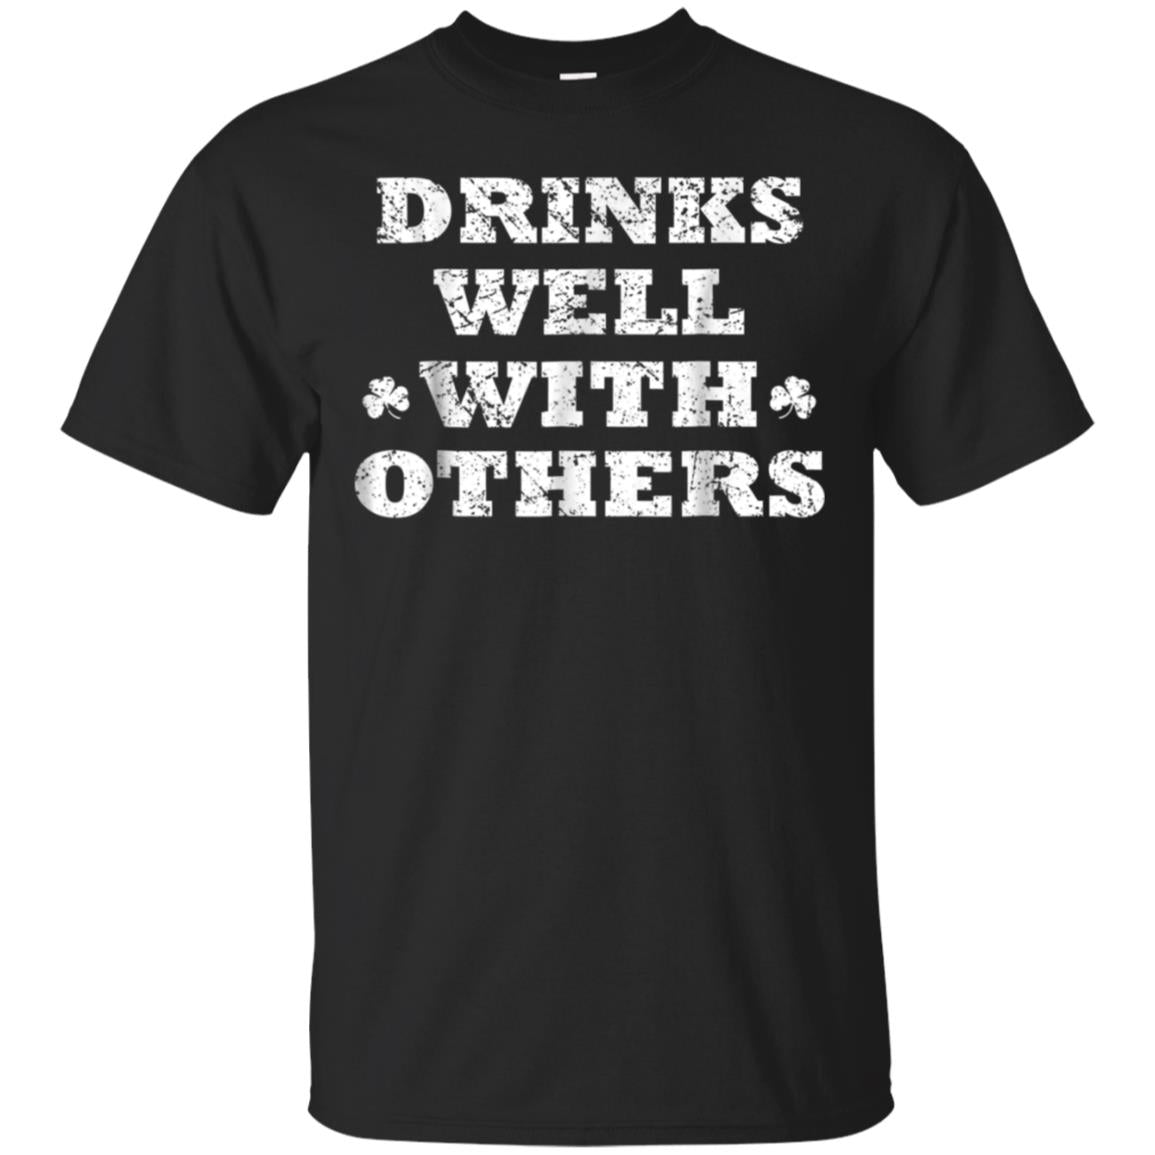 Vintage Drinks Well With Others Shirt St Patricks Day Tshirt 99promocode